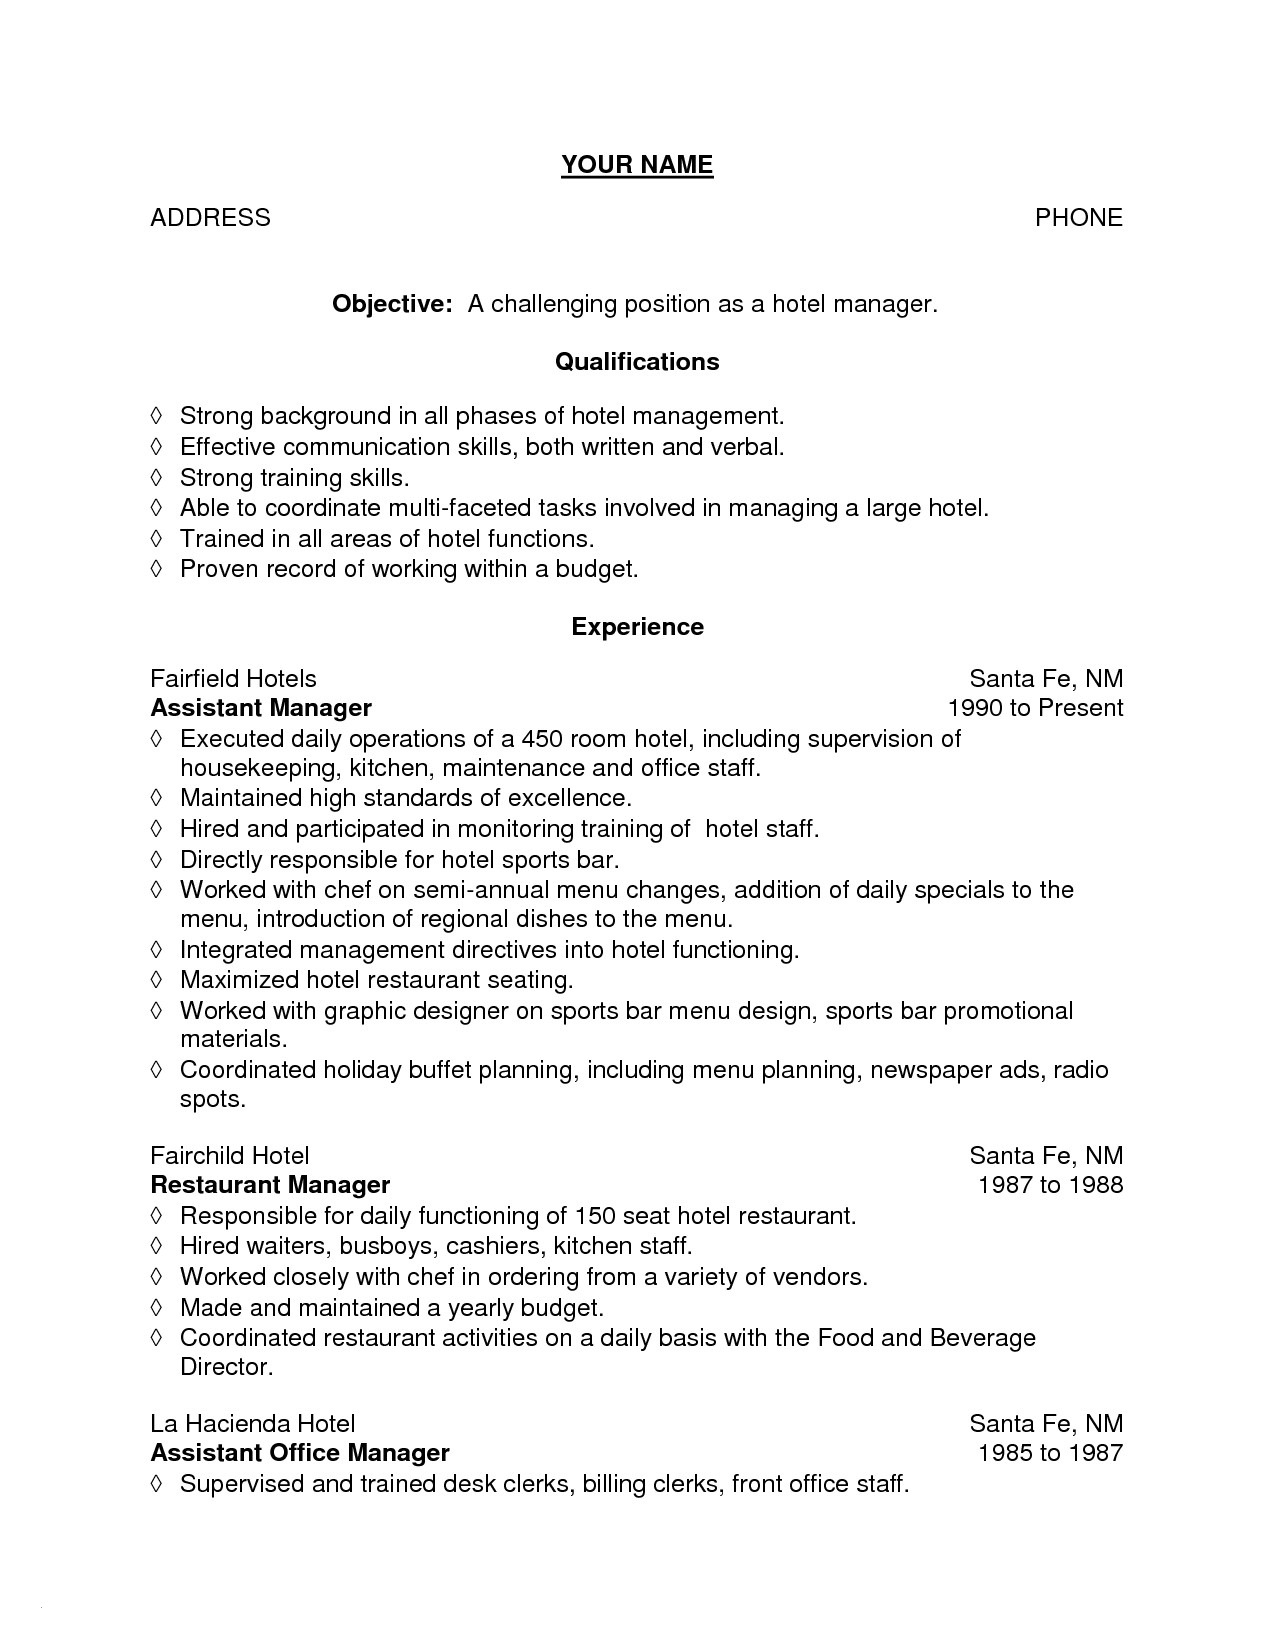 resume template restaurant manager example-Restaurant Managers Resume Inspirational Fresh Grapher Resume Sample Beautiful Resume Quotes 0d Bar Manager 16-a